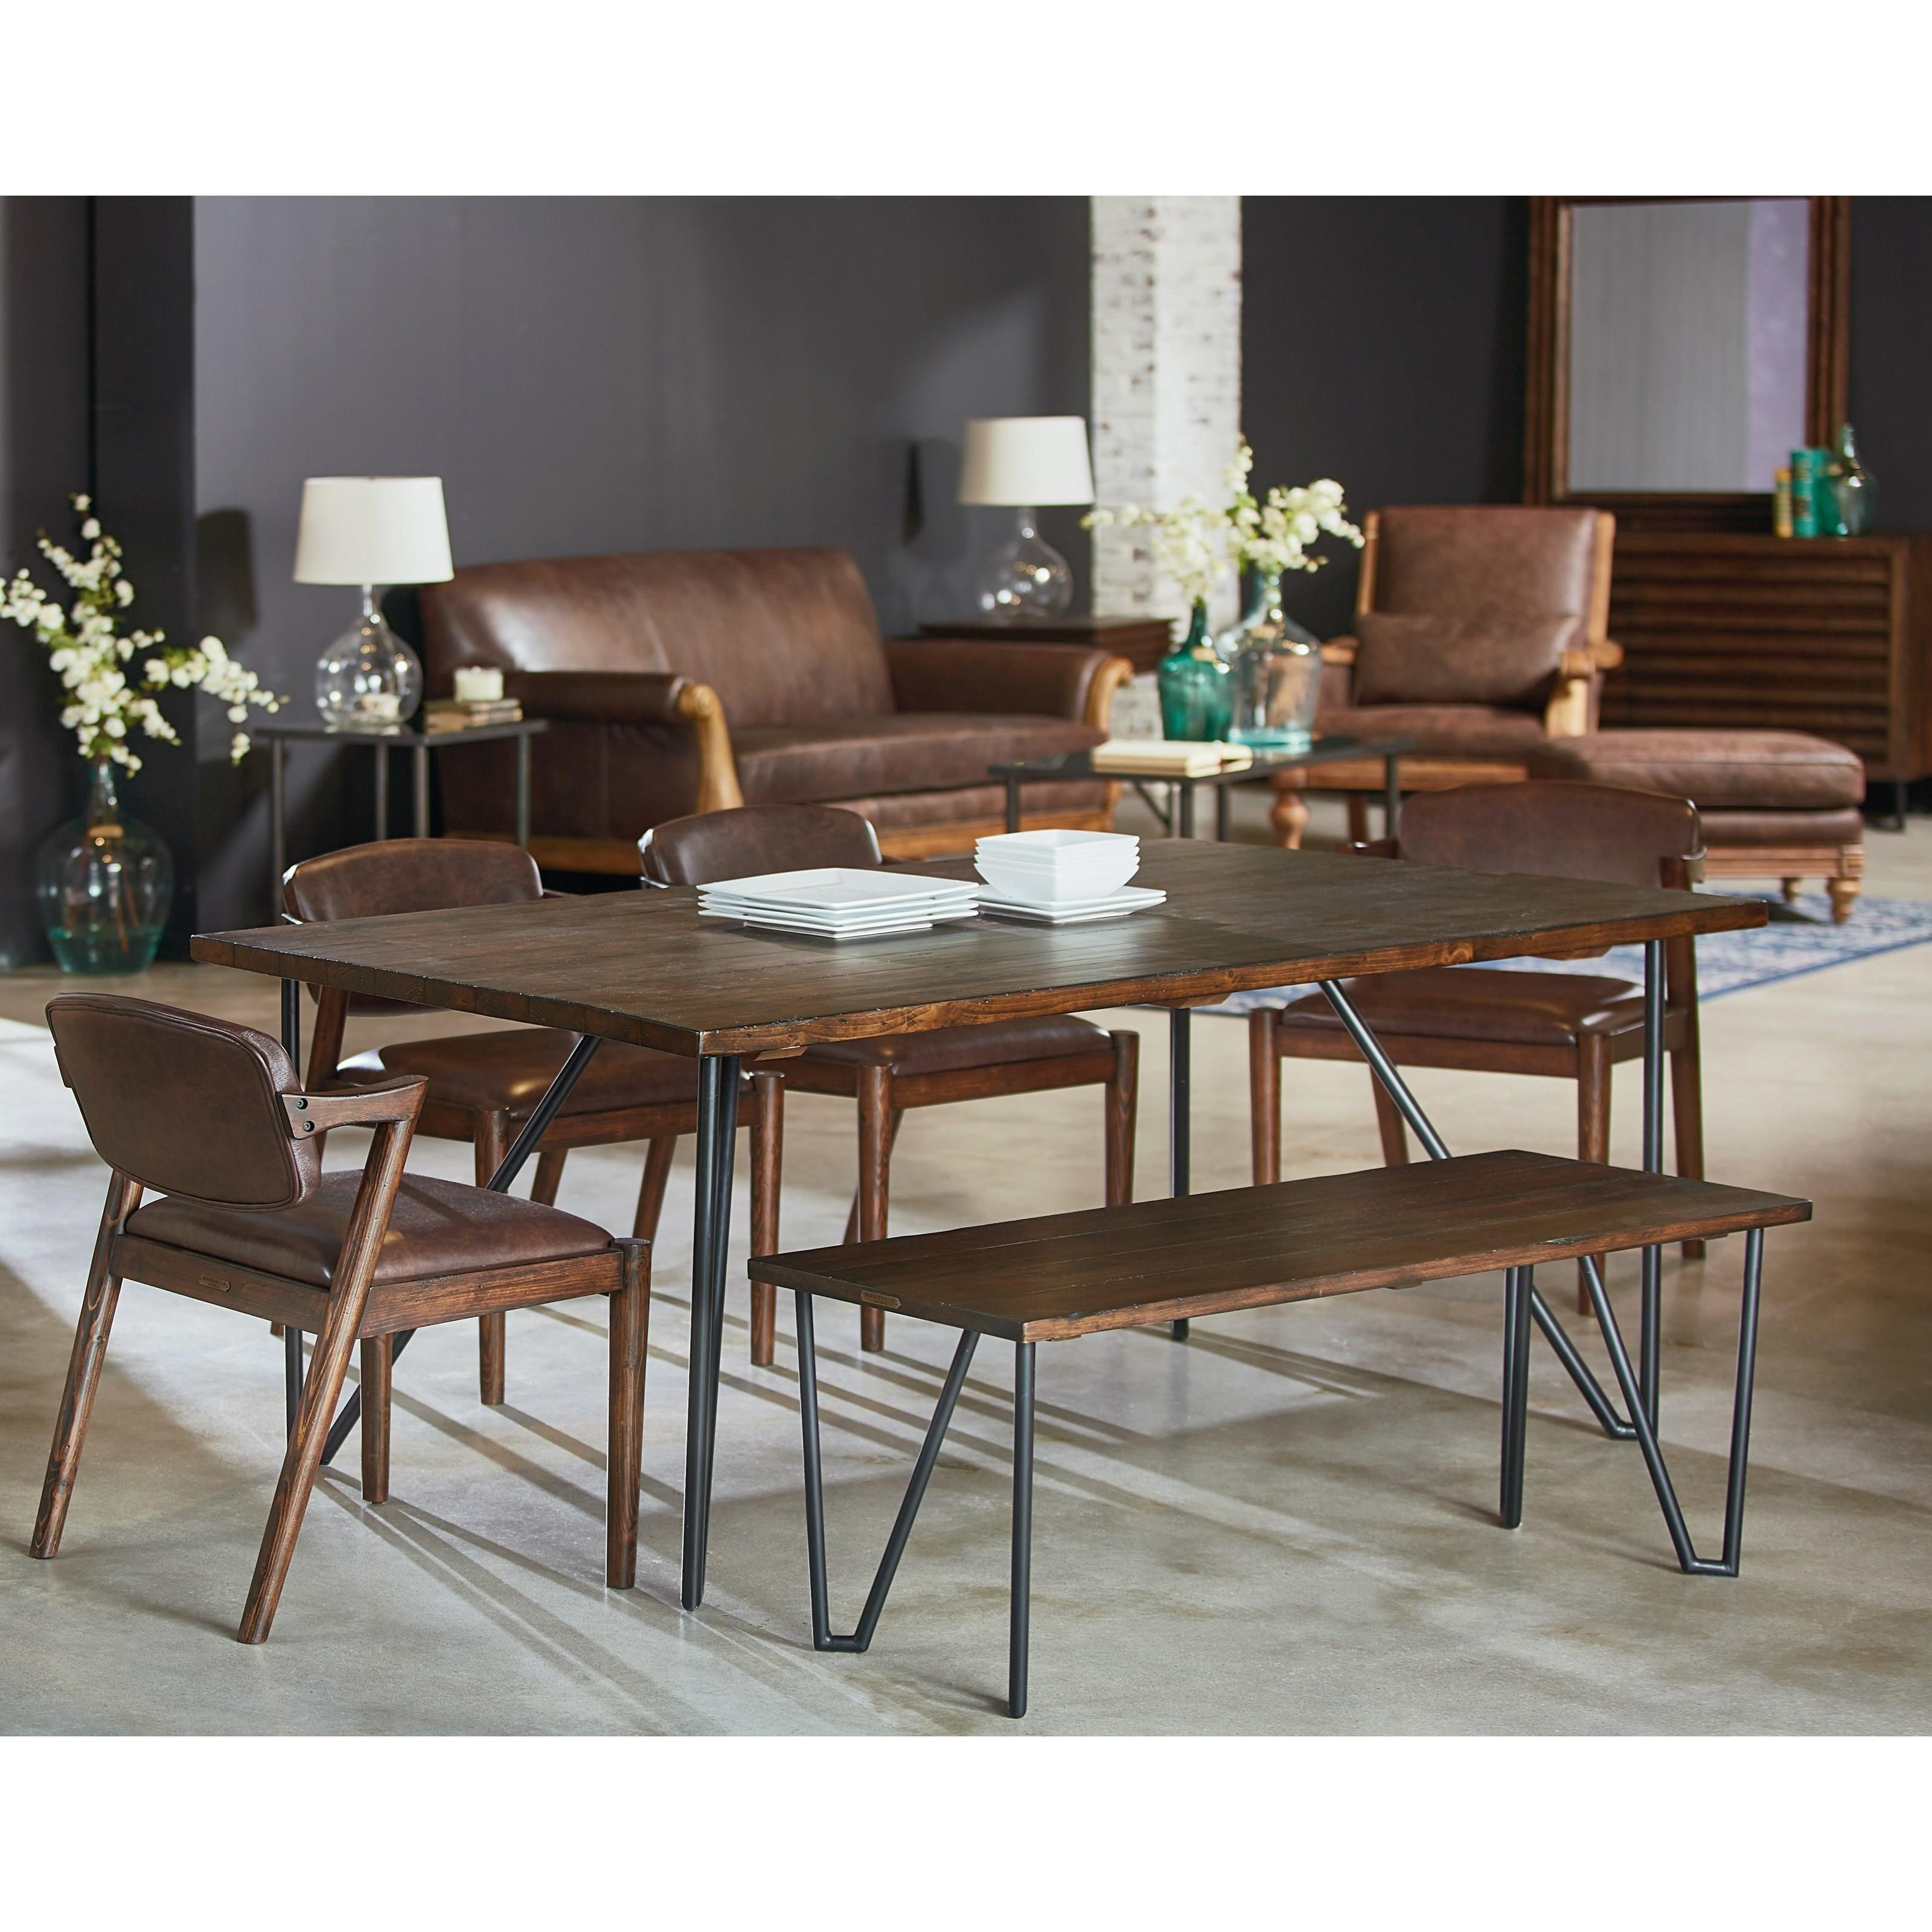 6 Hairpin Dining Table with Metal Hairpin Legs by Magnolia Home